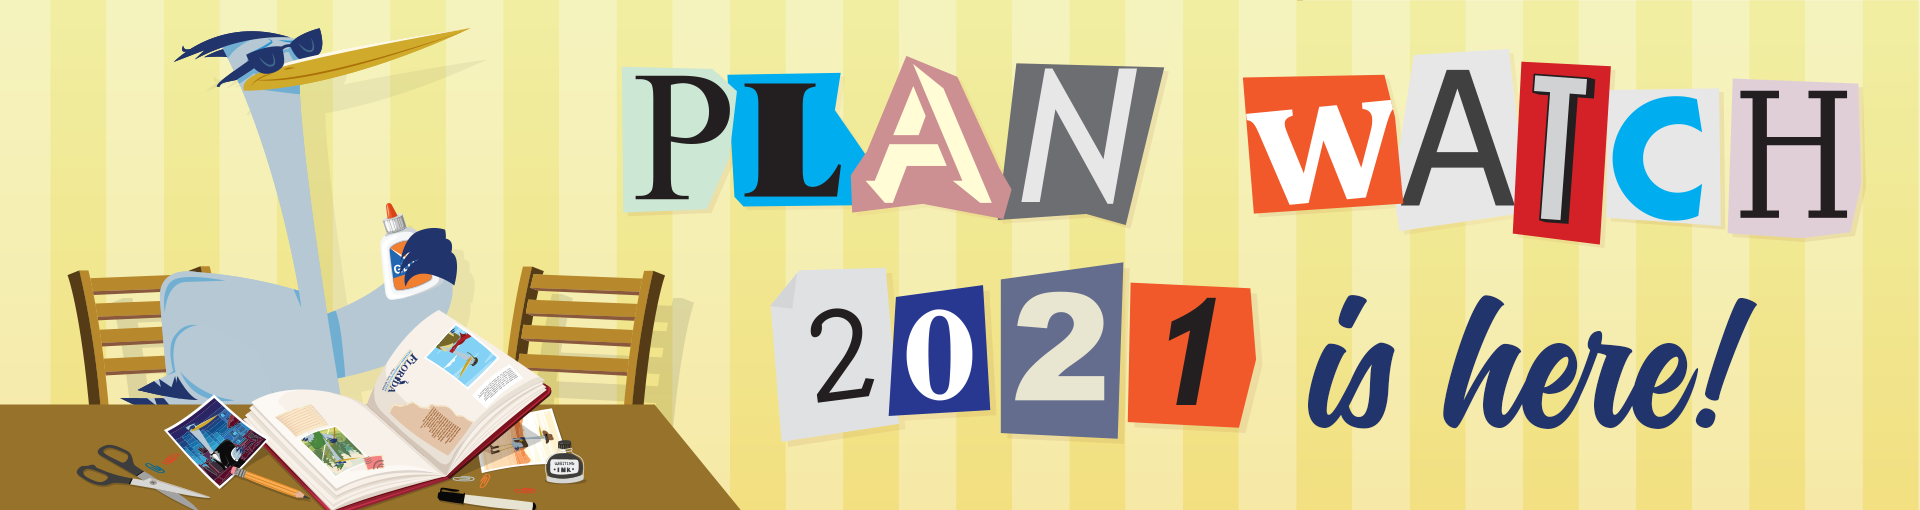 Plan Watch 2021 is here!